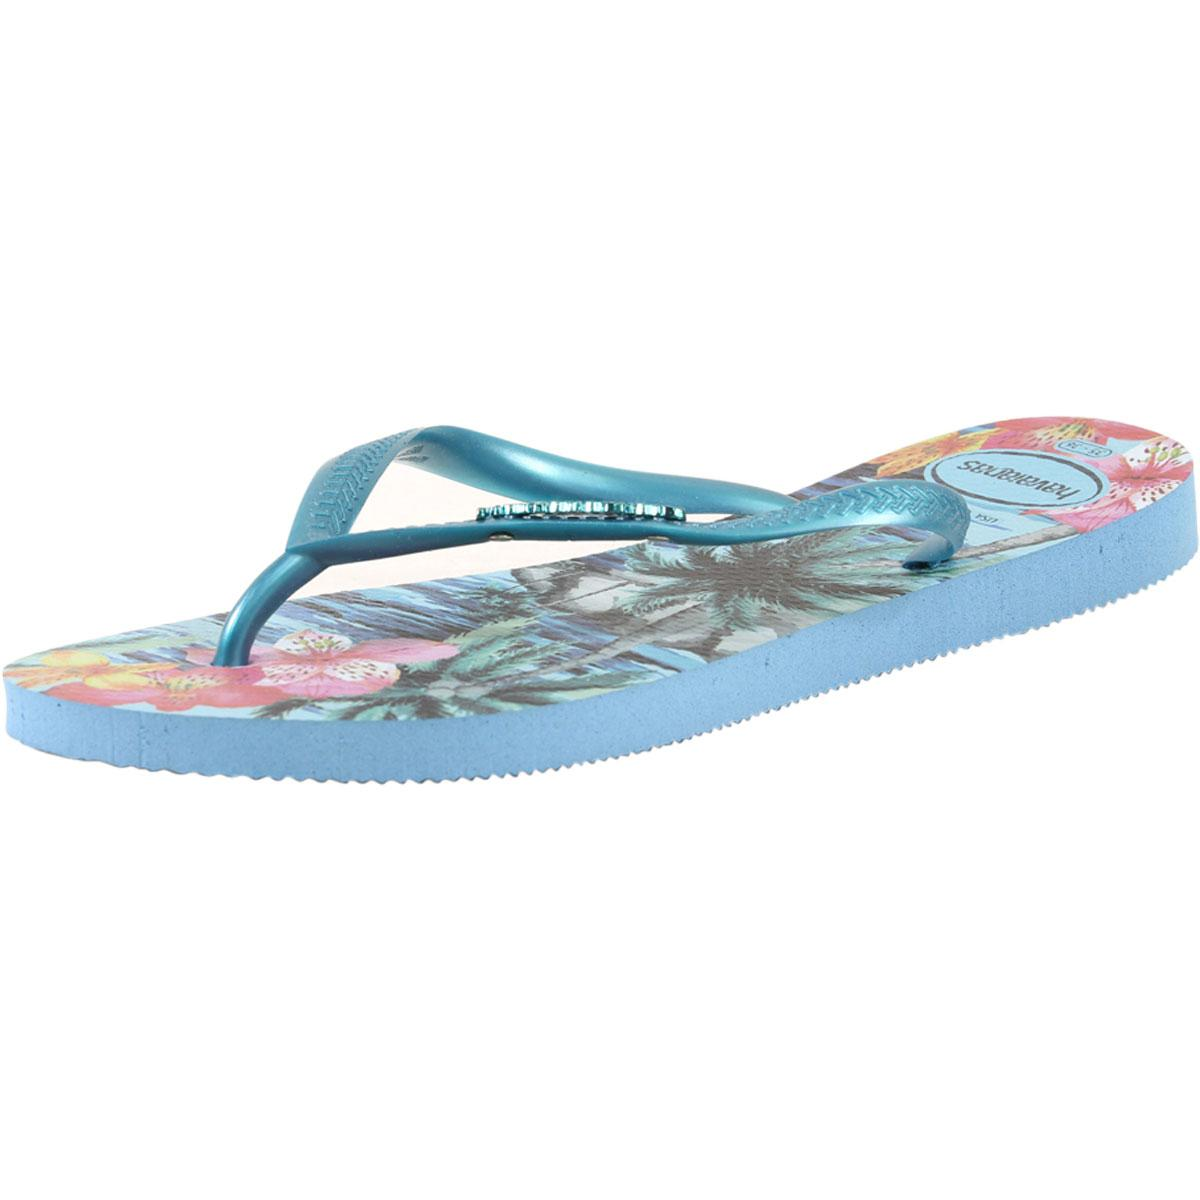 ef343a6e04ed Havaianas Women s Slim Tropical Flip Flops Sandals Shoes by Havaianas.  Touch to zoom